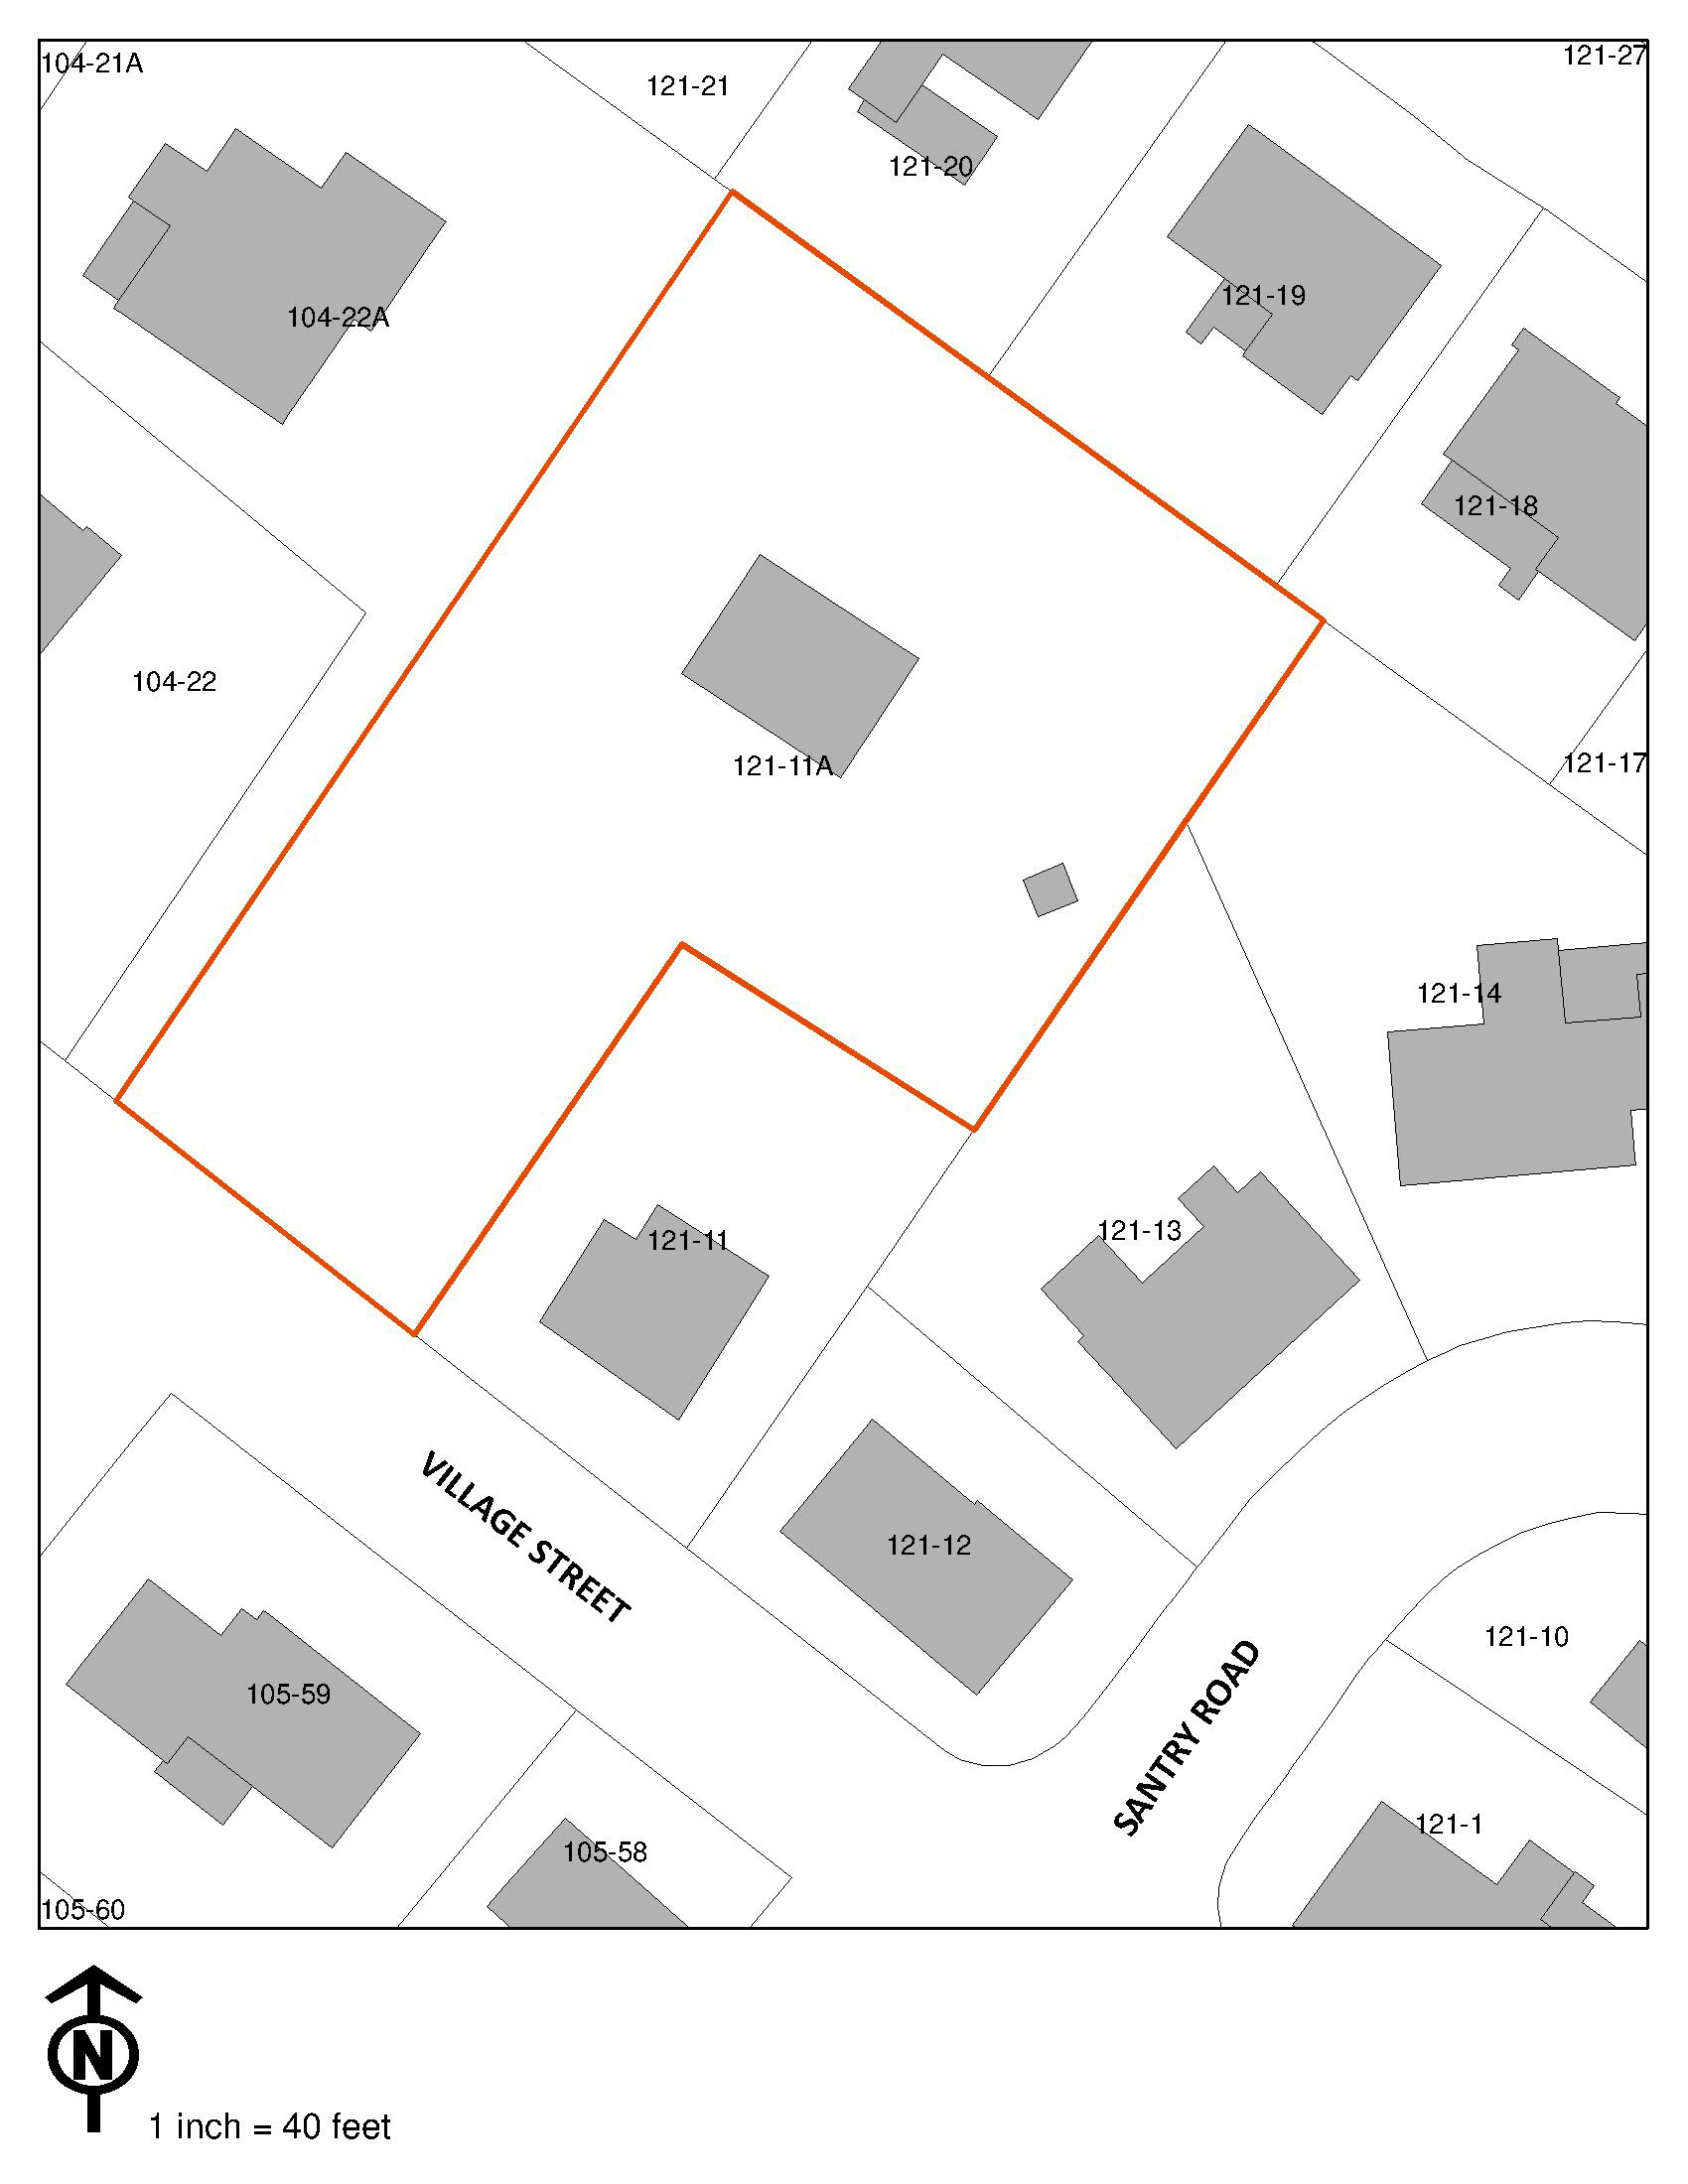 Chip Ford My Property Lines – How To Get A Site Plan For My Property